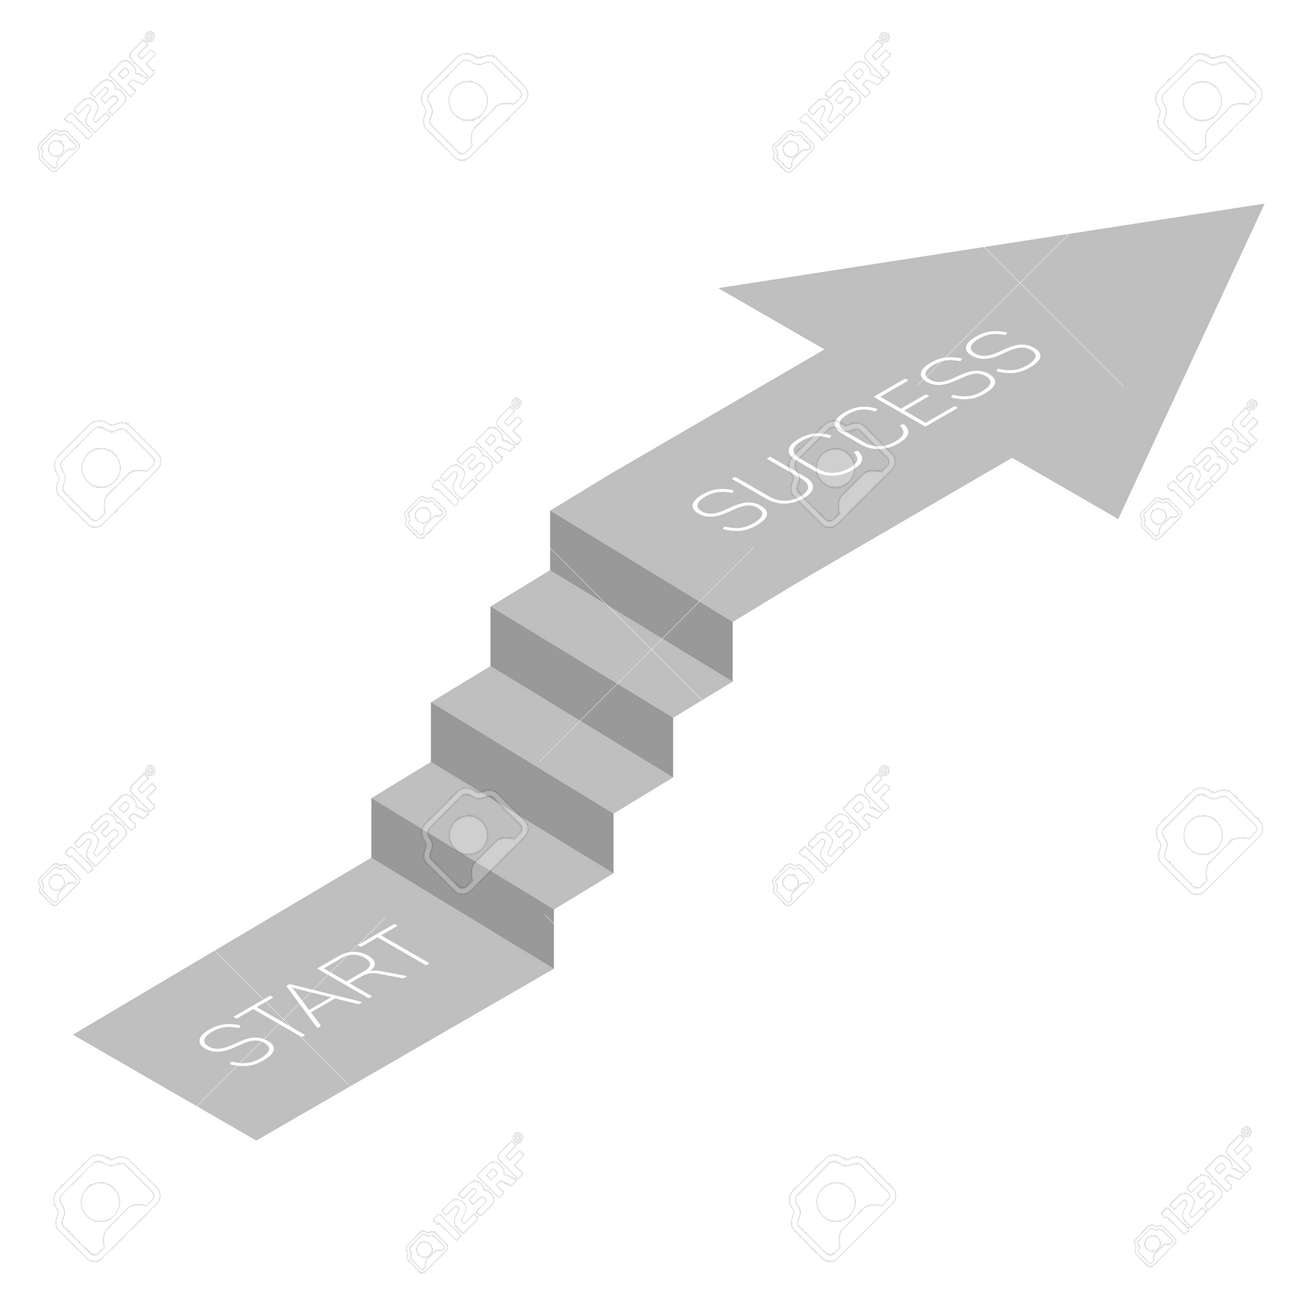 Stair With Arrow Isometric View Infographic Concept Vector